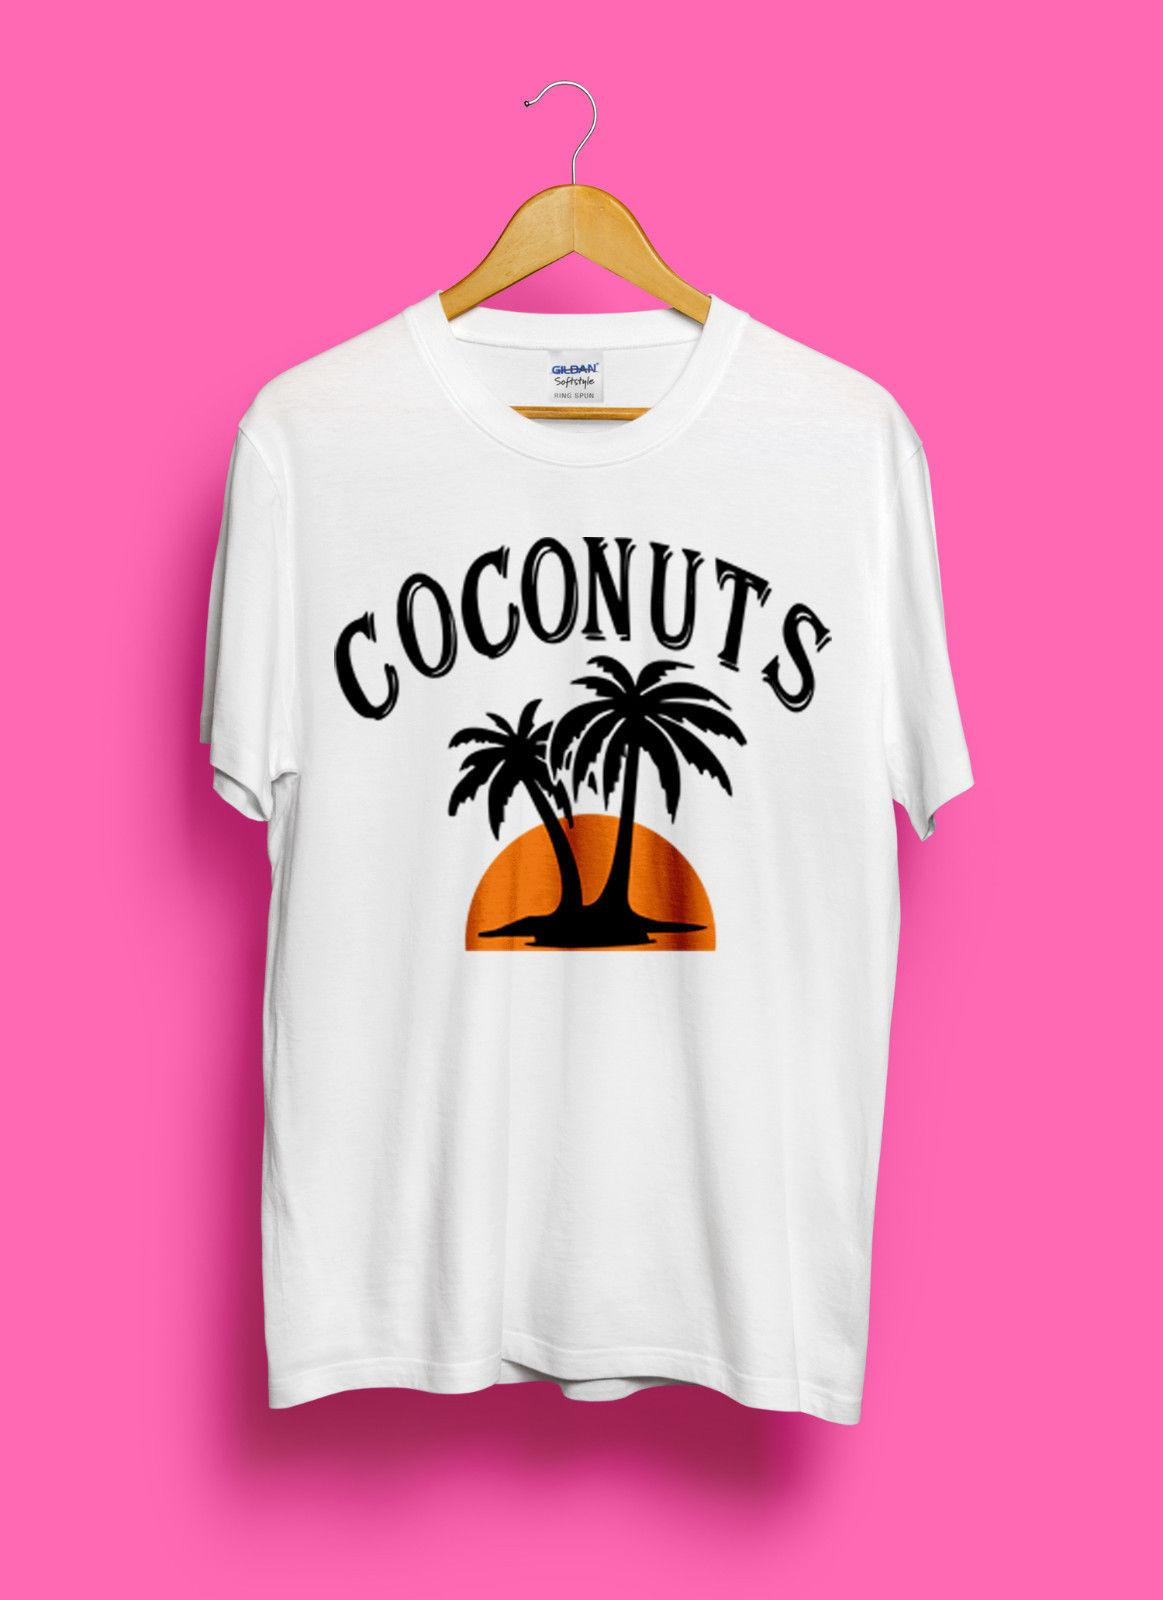 a5c881e6c Vintage Widespread Panic Shirt Coconuts Shirt Adult Uni T Shirt Sizes 2018  New Short Sleeve Men T Shirt 100% Cotton Family Top Tee Tourist Shirt Fun  Tee ...